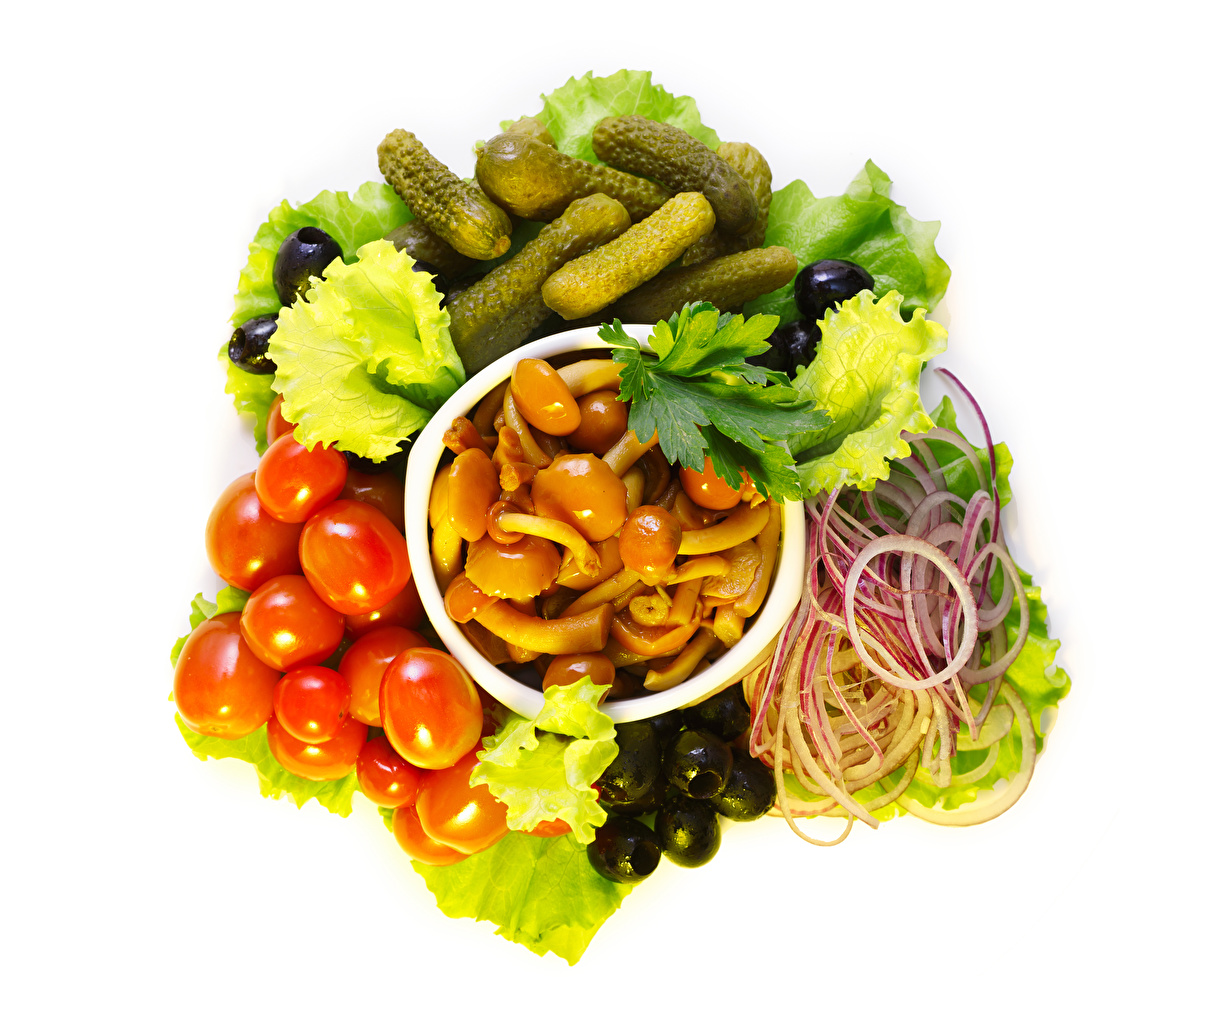 Image Olive Onion Tomatoes Cucumbers Mushrooms Food Vegetables White background